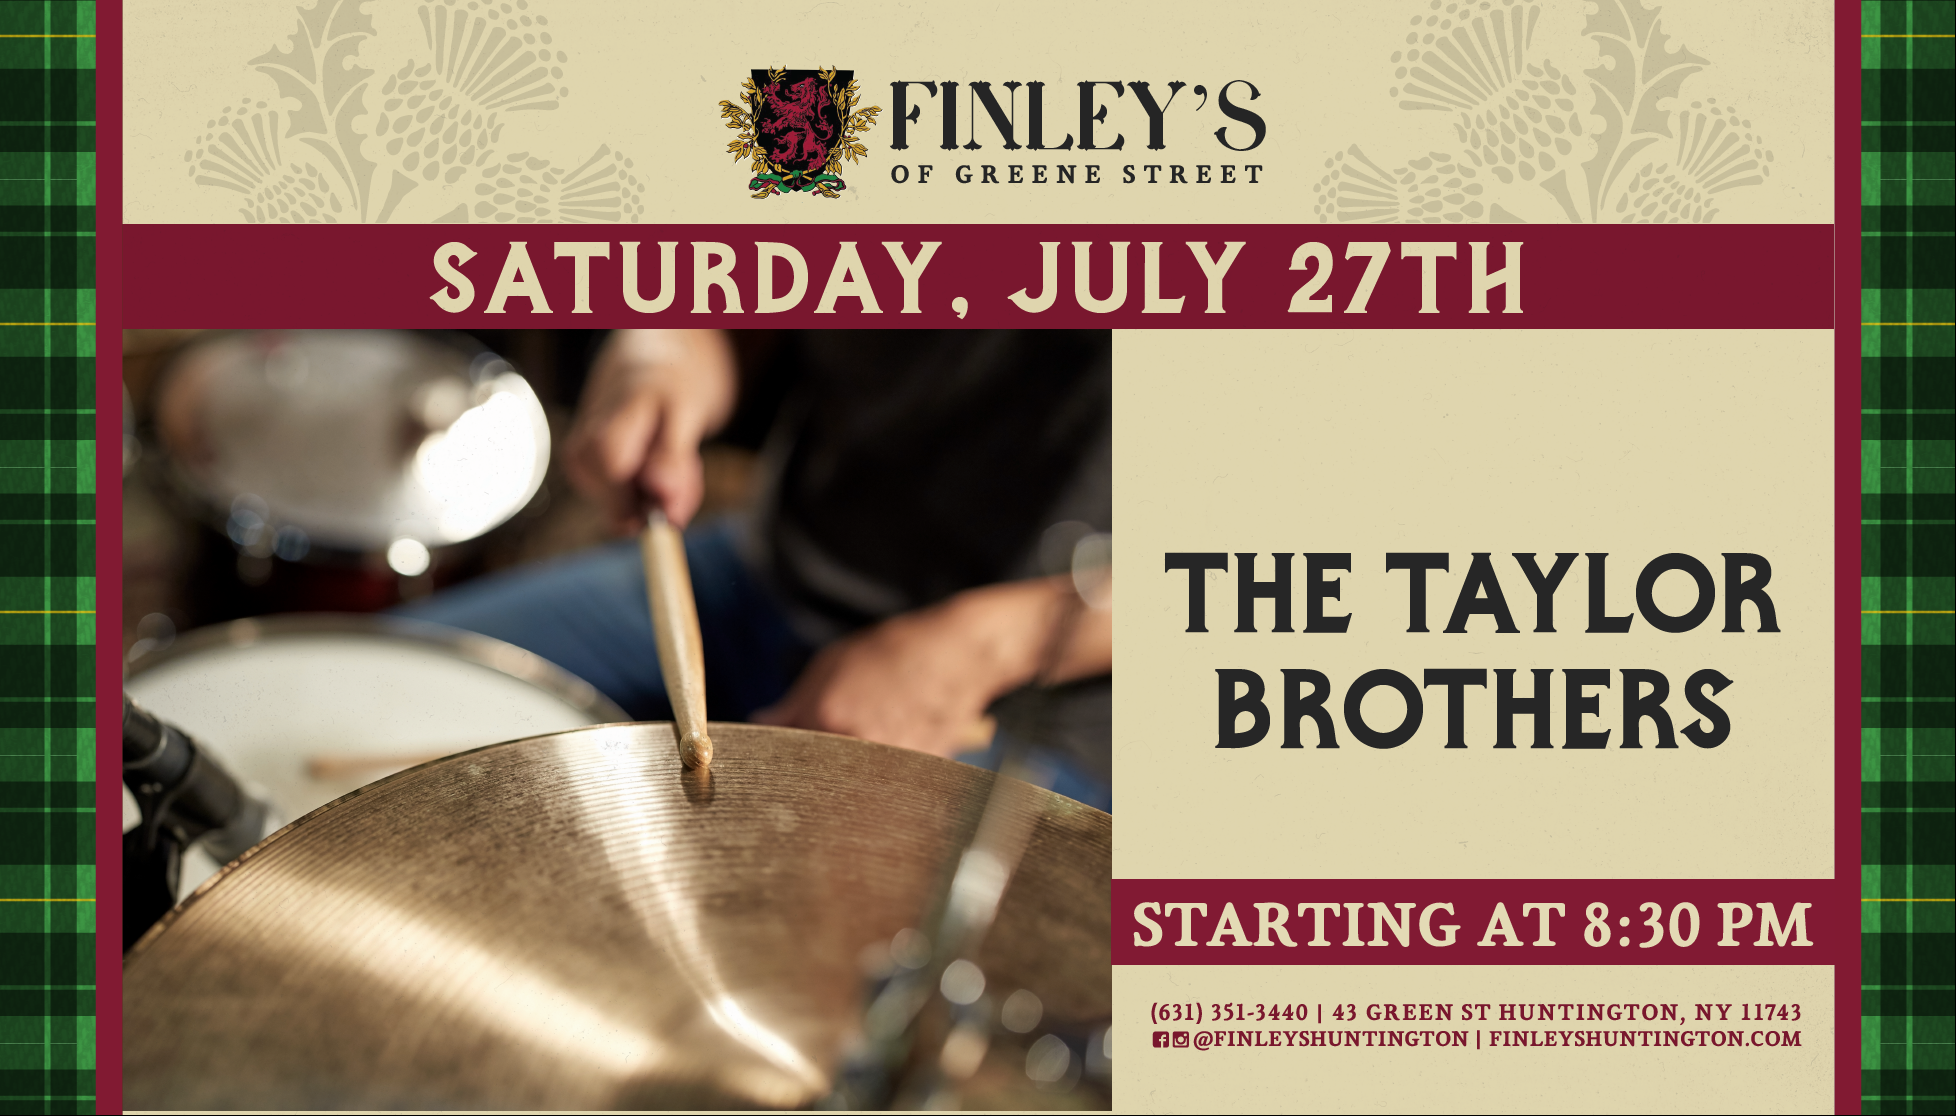 Flyer for live music with The Taylor Brothers on July 27th at 8:30pm